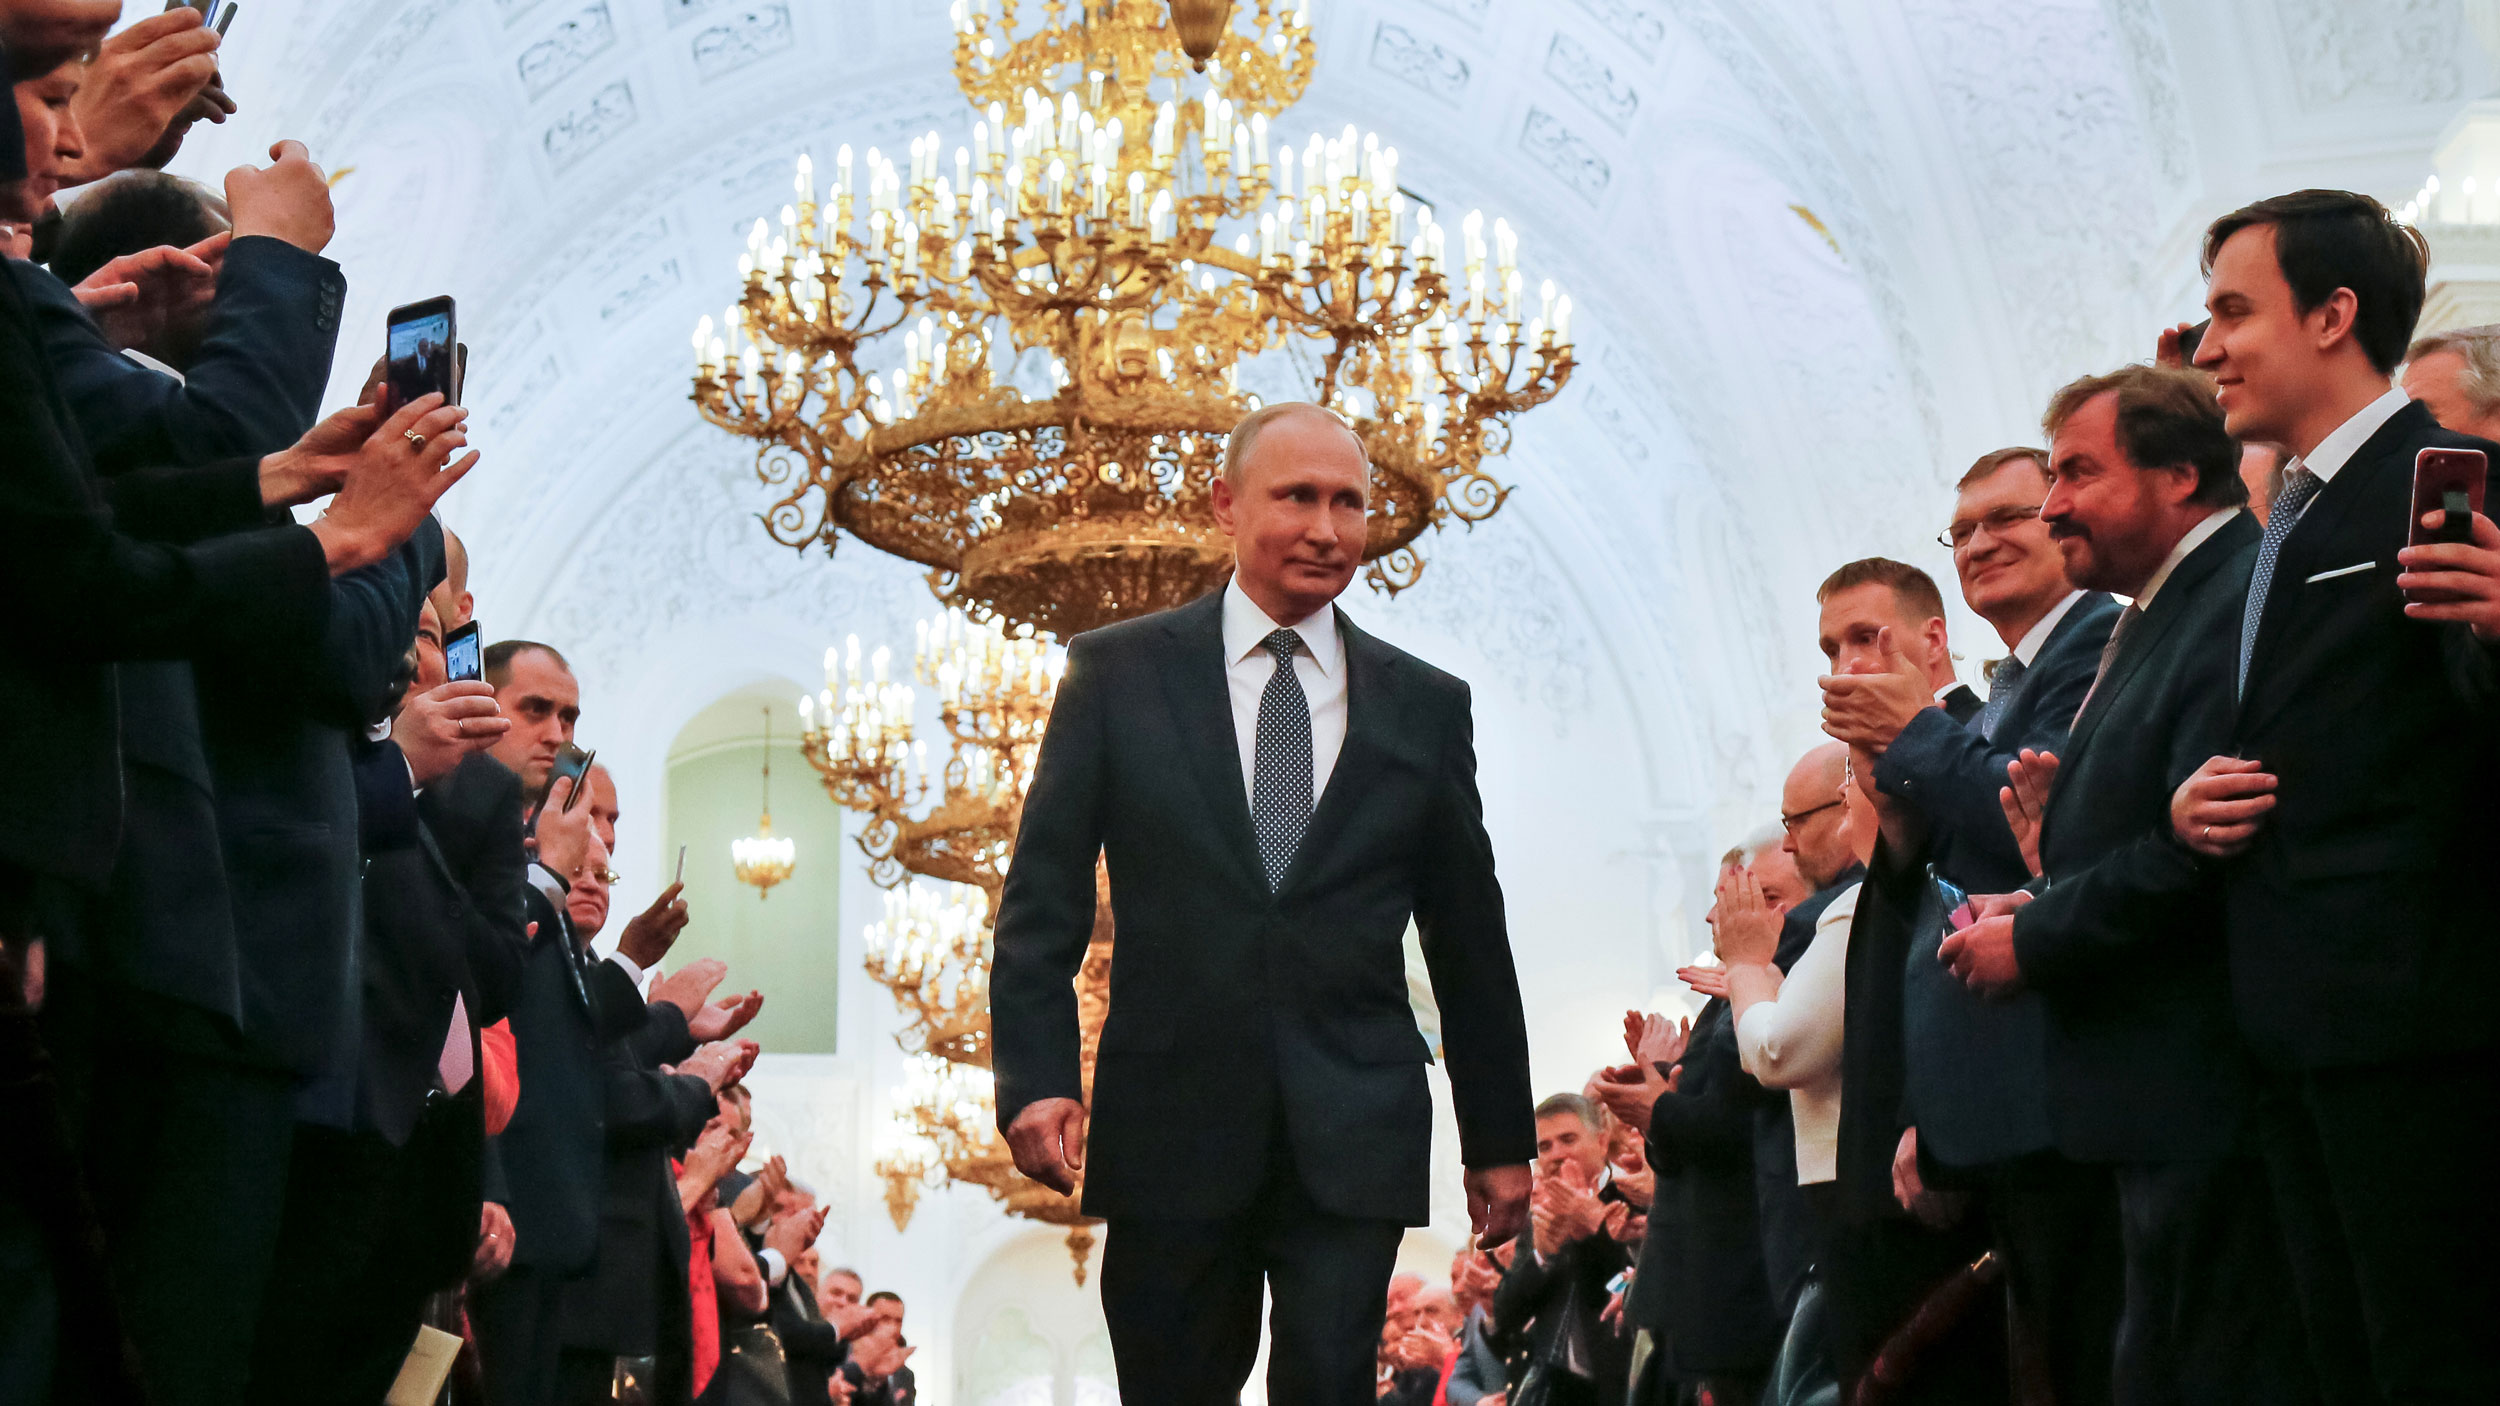 Vladimir Putin walks between two rows of people clapping their hands and taking photos with their cell phones